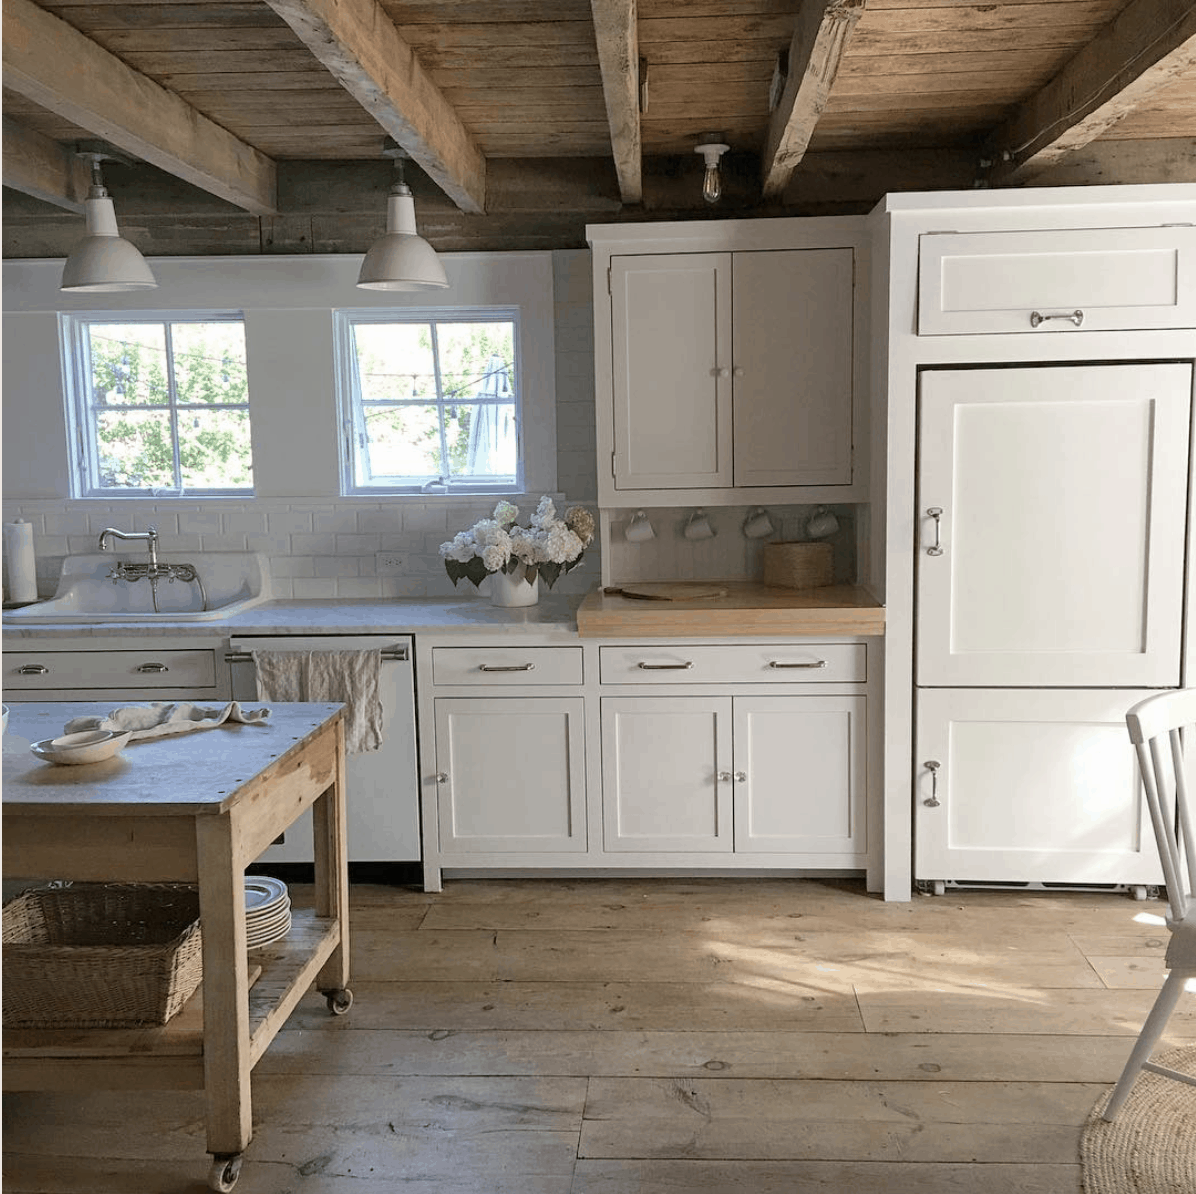 White Flower Farmhouse kitchen: rustic wood floors, white cabinets, marble counters, exposed ceiling beams- Maison de Pax